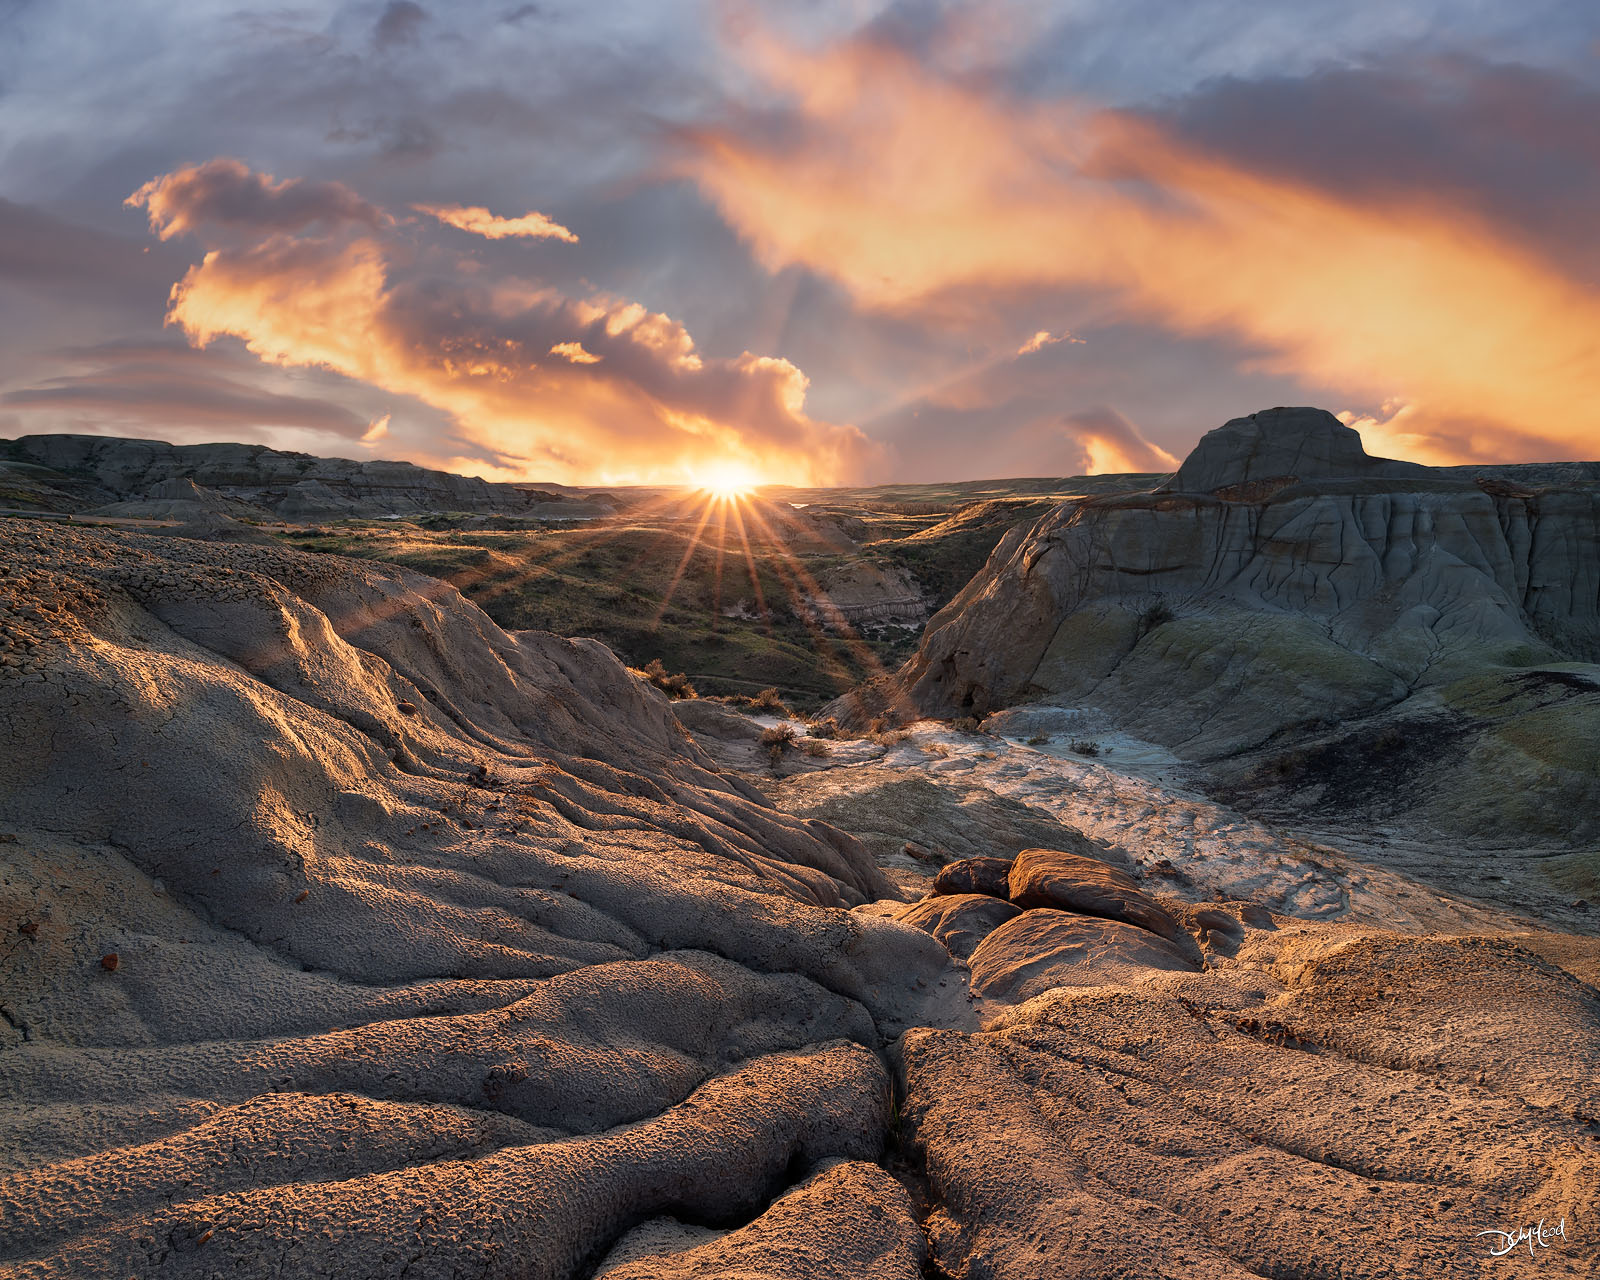 Badlands in Dinosaur Provincial Park are warmly illuminated by  the setting sun on the horizon with a colorful sky.